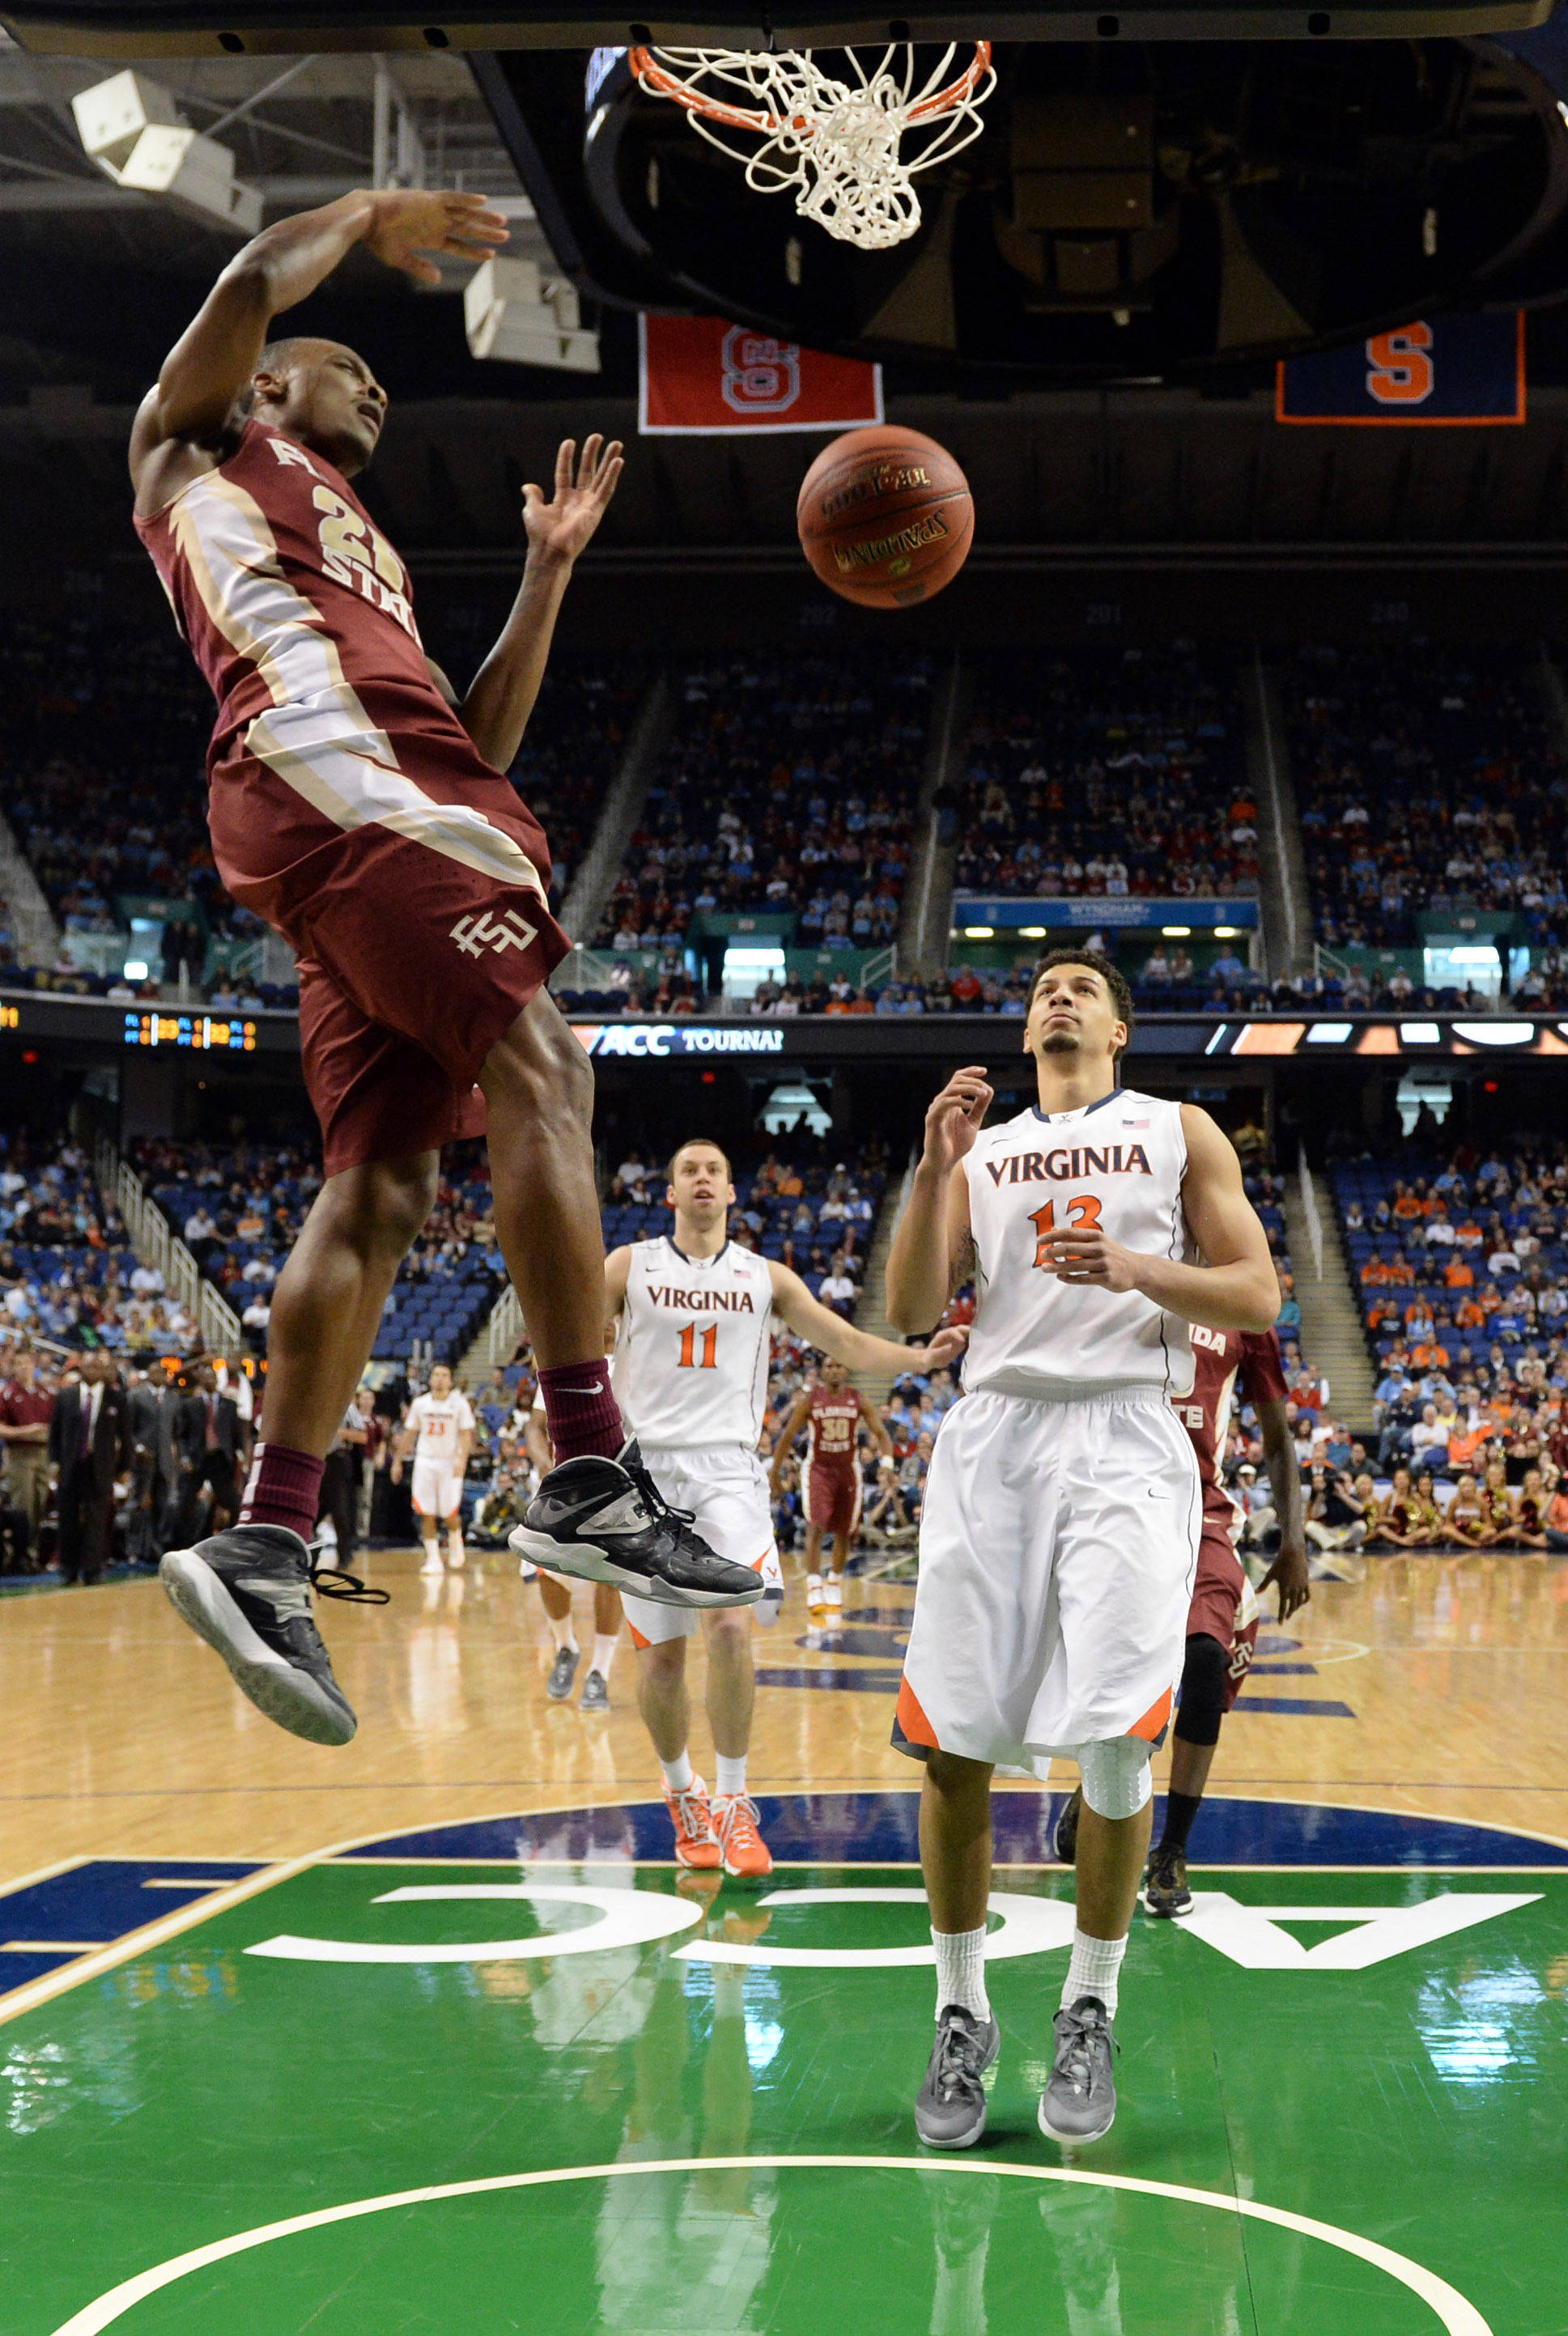 Mar 14, 2014; Greensboro, NC, USA;  Florida State Seminoles guard Aaron Thomas (25) goes up for a dunk against the Virginia Cavaliers in the quarterfinals of the ACC college basketball tournament at Greensboro Coliseum. Mandatory Credit: John David Mercer-USA TODAY Sports